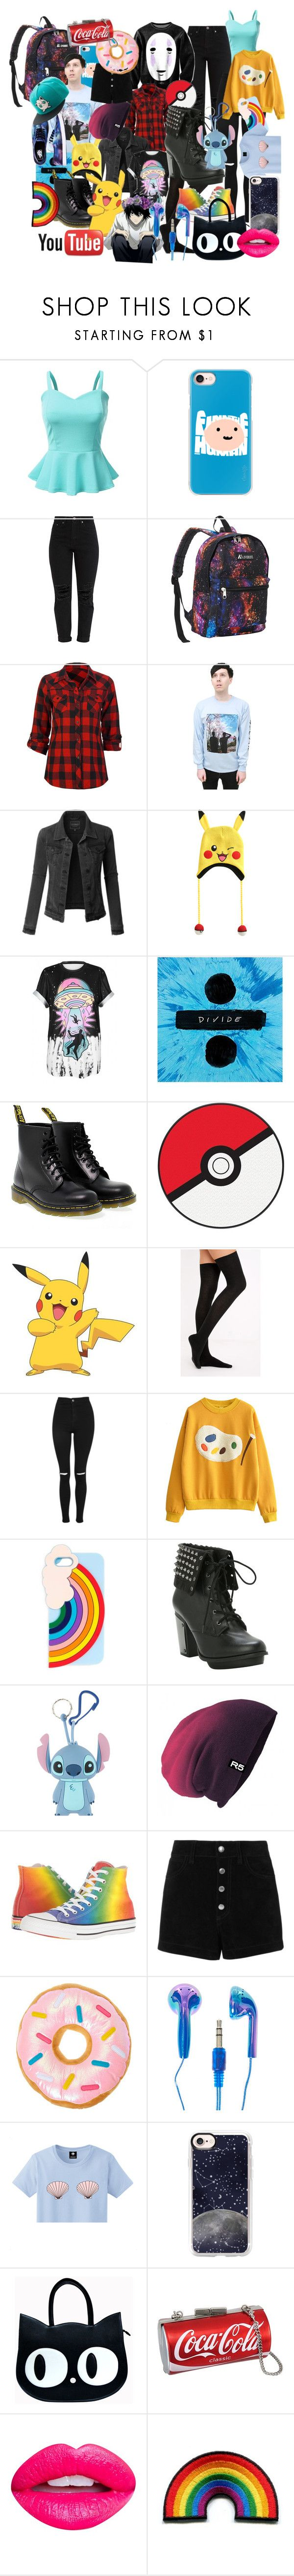 """""""ME"""" by paffen-amber ❤ liked on Polyvore featuring Doublju, Casetify, Everest, Full Tilt, LE3NO, Nintendo, WithChic, Dr. Martens, York Wallcoverings and Vans"""